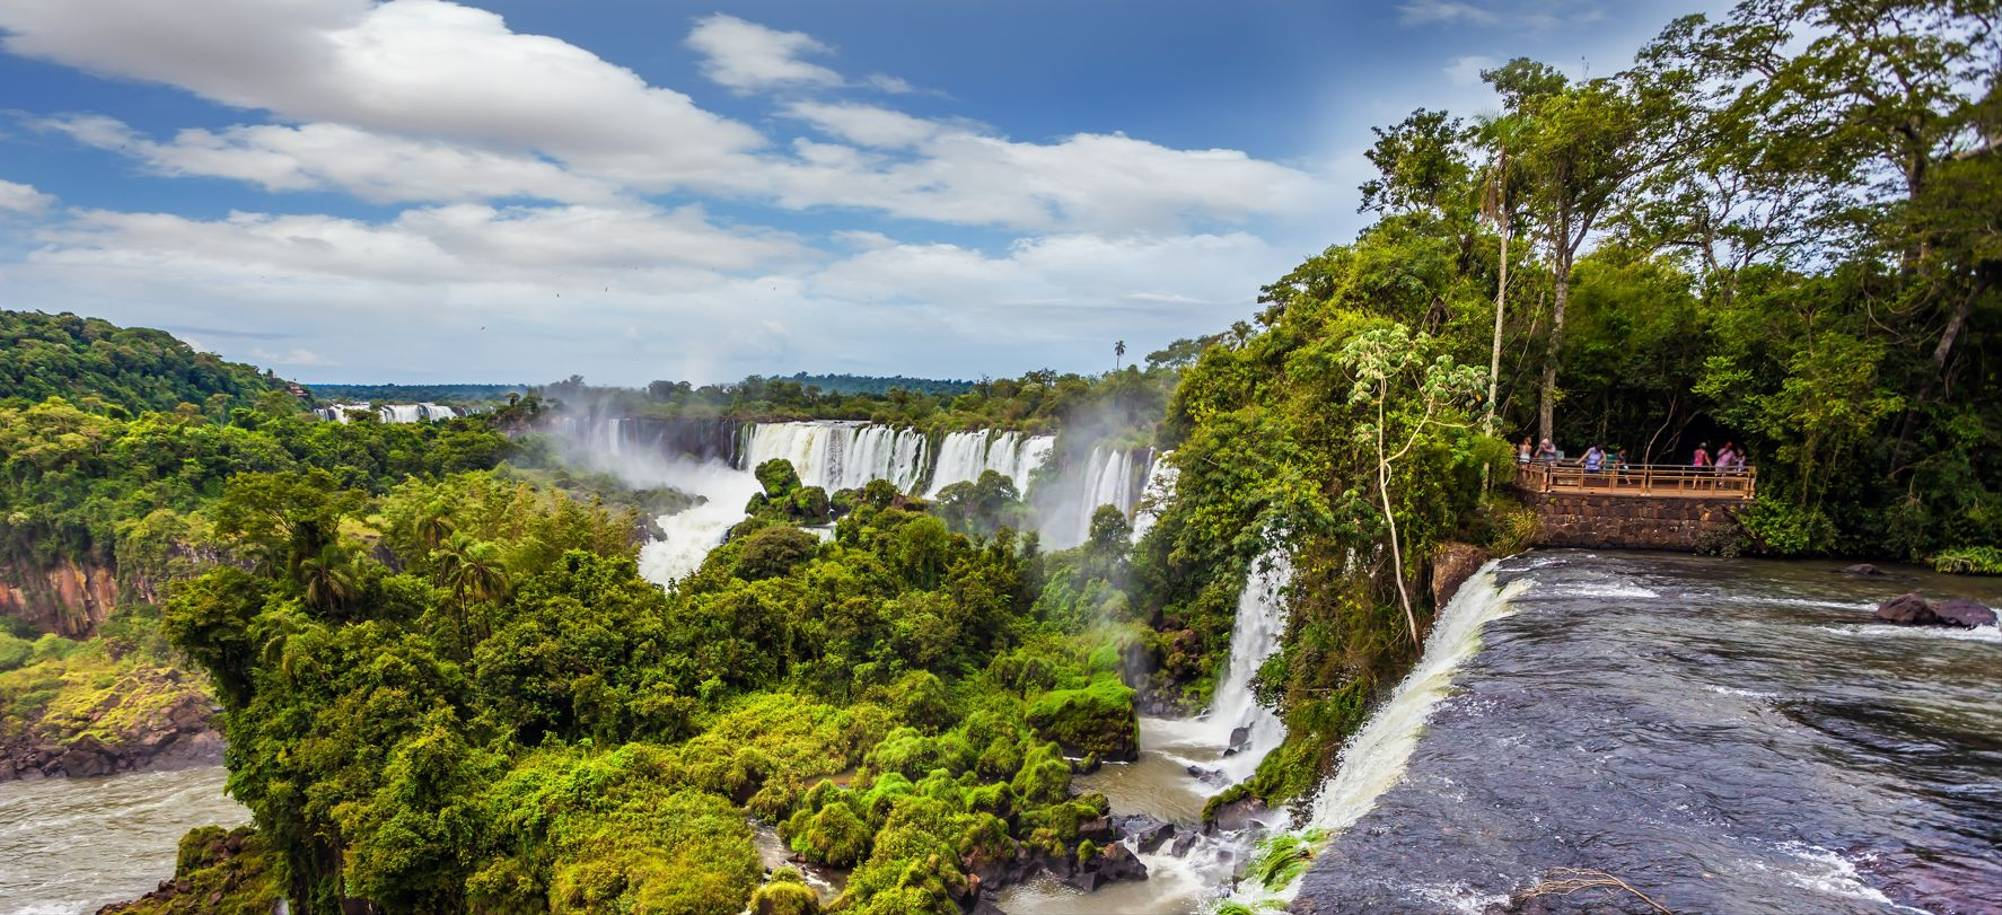 24 Day - Iguazu Falls - argentina side - Itinerary Desktop.jpg